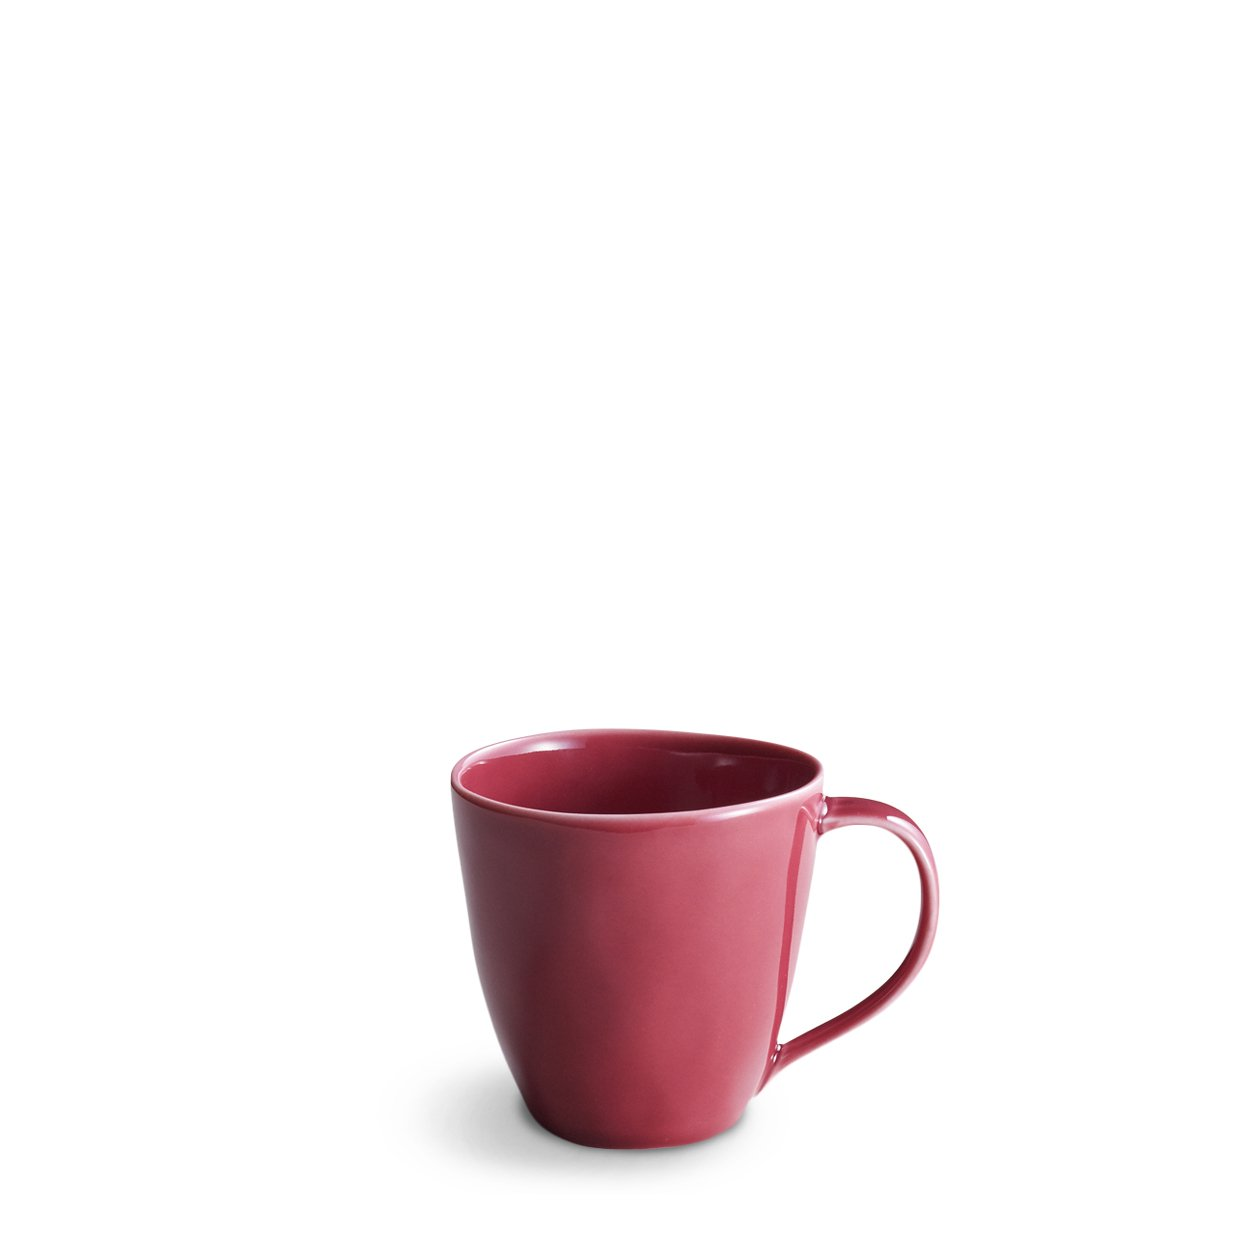 Dune Porcelain Red Mug